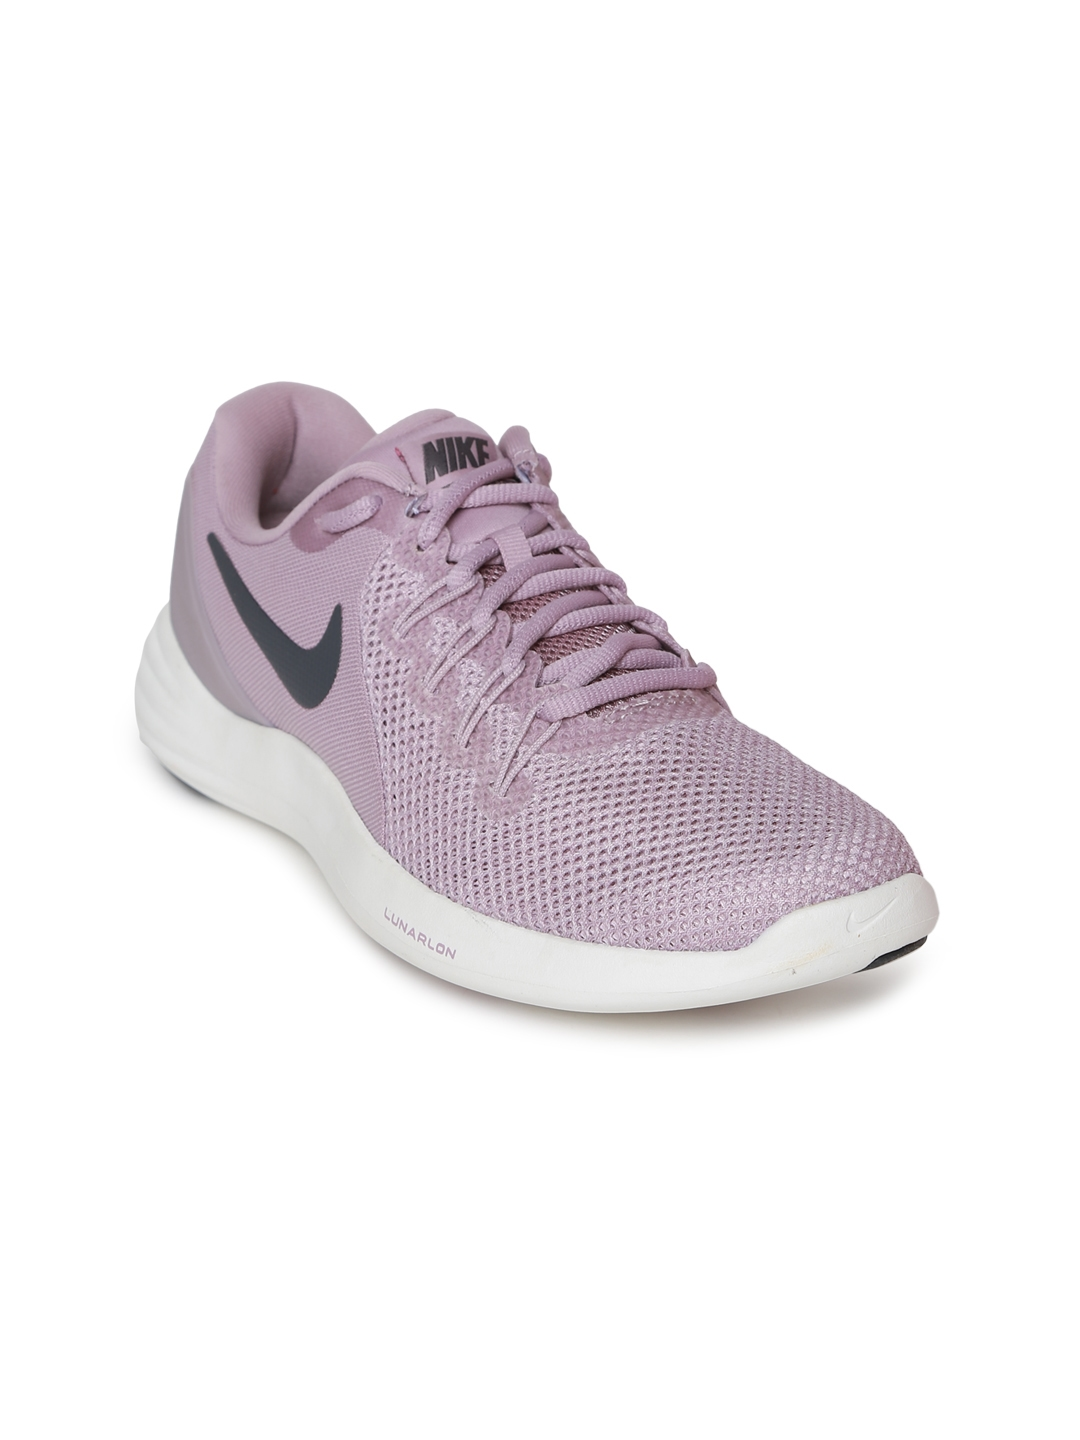 ef8a2969dcd80 Buy Nike Women Purple LUNAR APPARENT Running Shoes - Sports Shoes ...